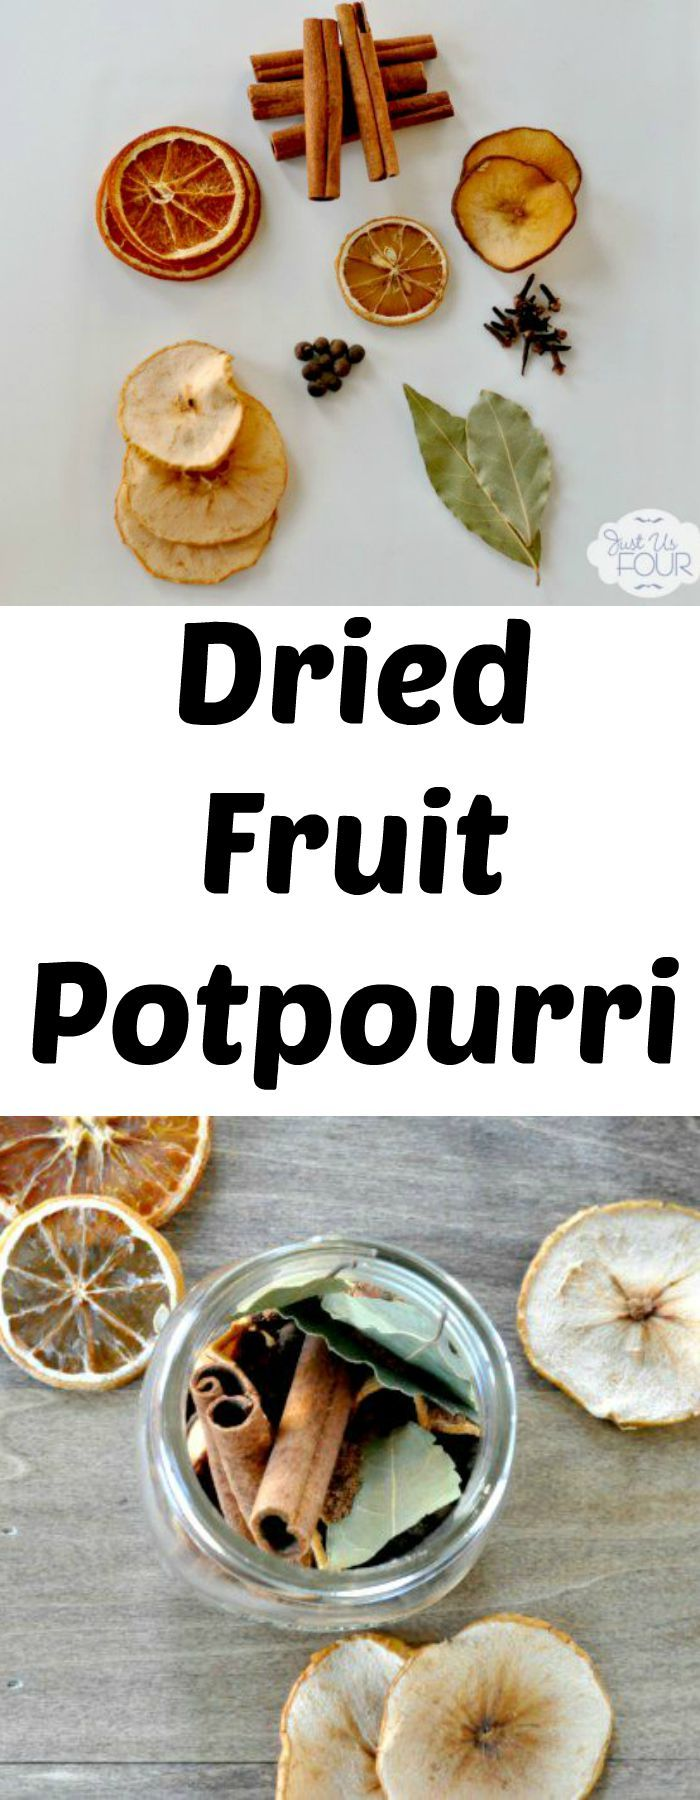 Dried Fruit Potpourri Makes The Perfect Homemade Gift And Lasts A